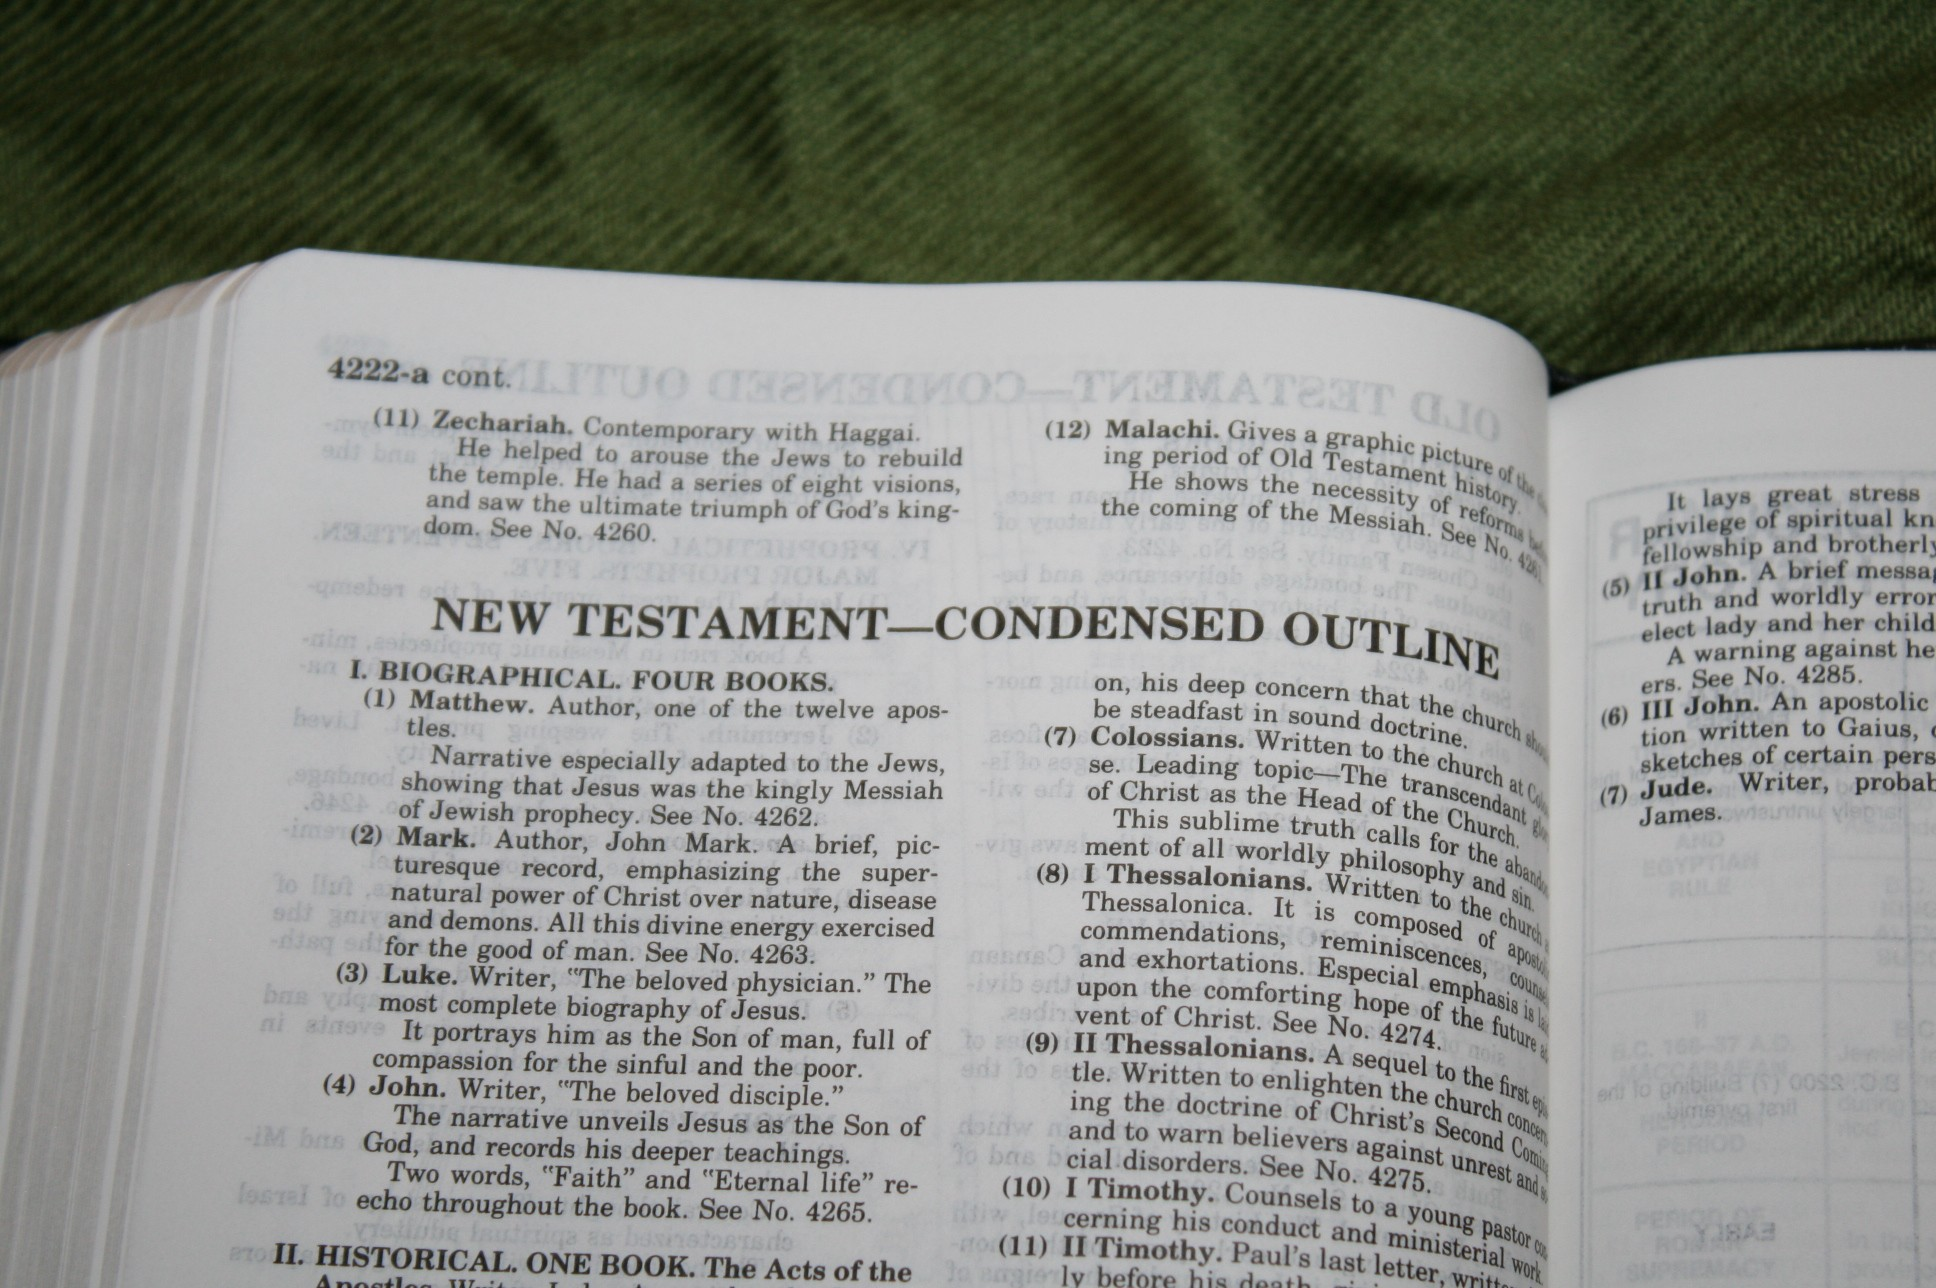 Handy Size Thompson Chain Reference Bible KJV (169)